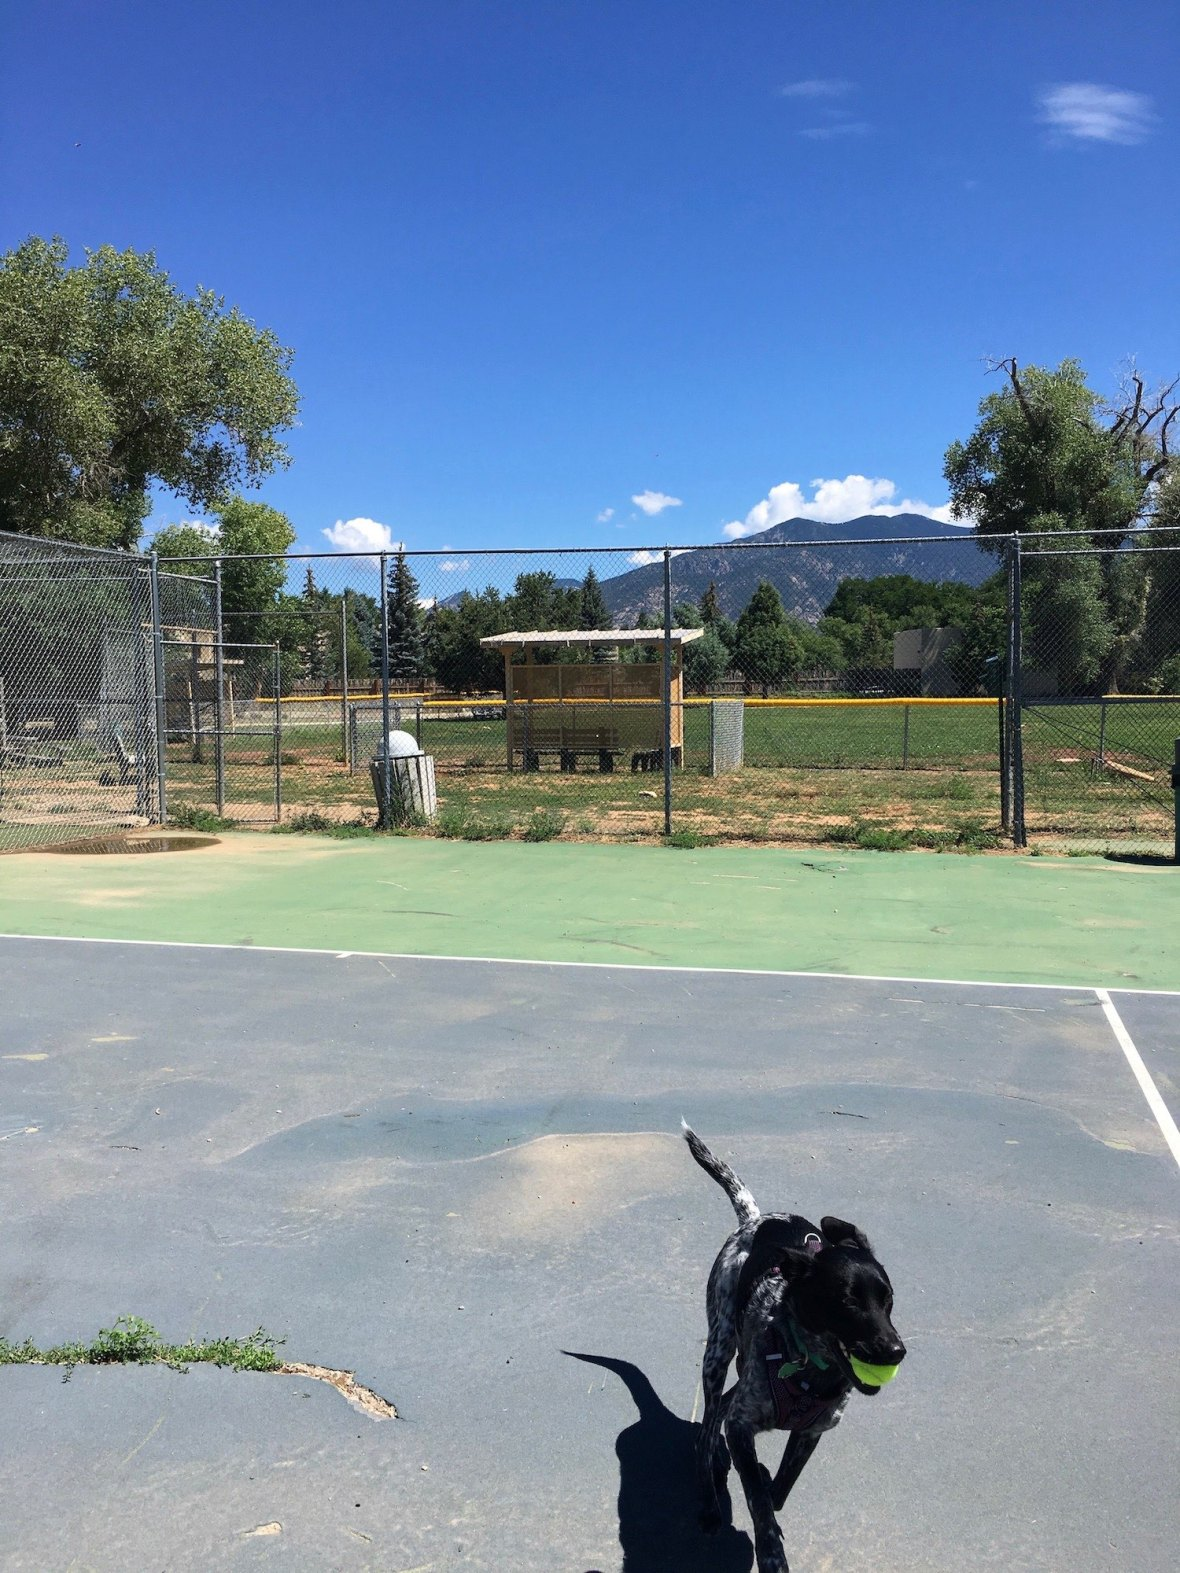 Juniper at Taos tennis court off-leash dog area at Kit Carson Park in Taos, New Mexico